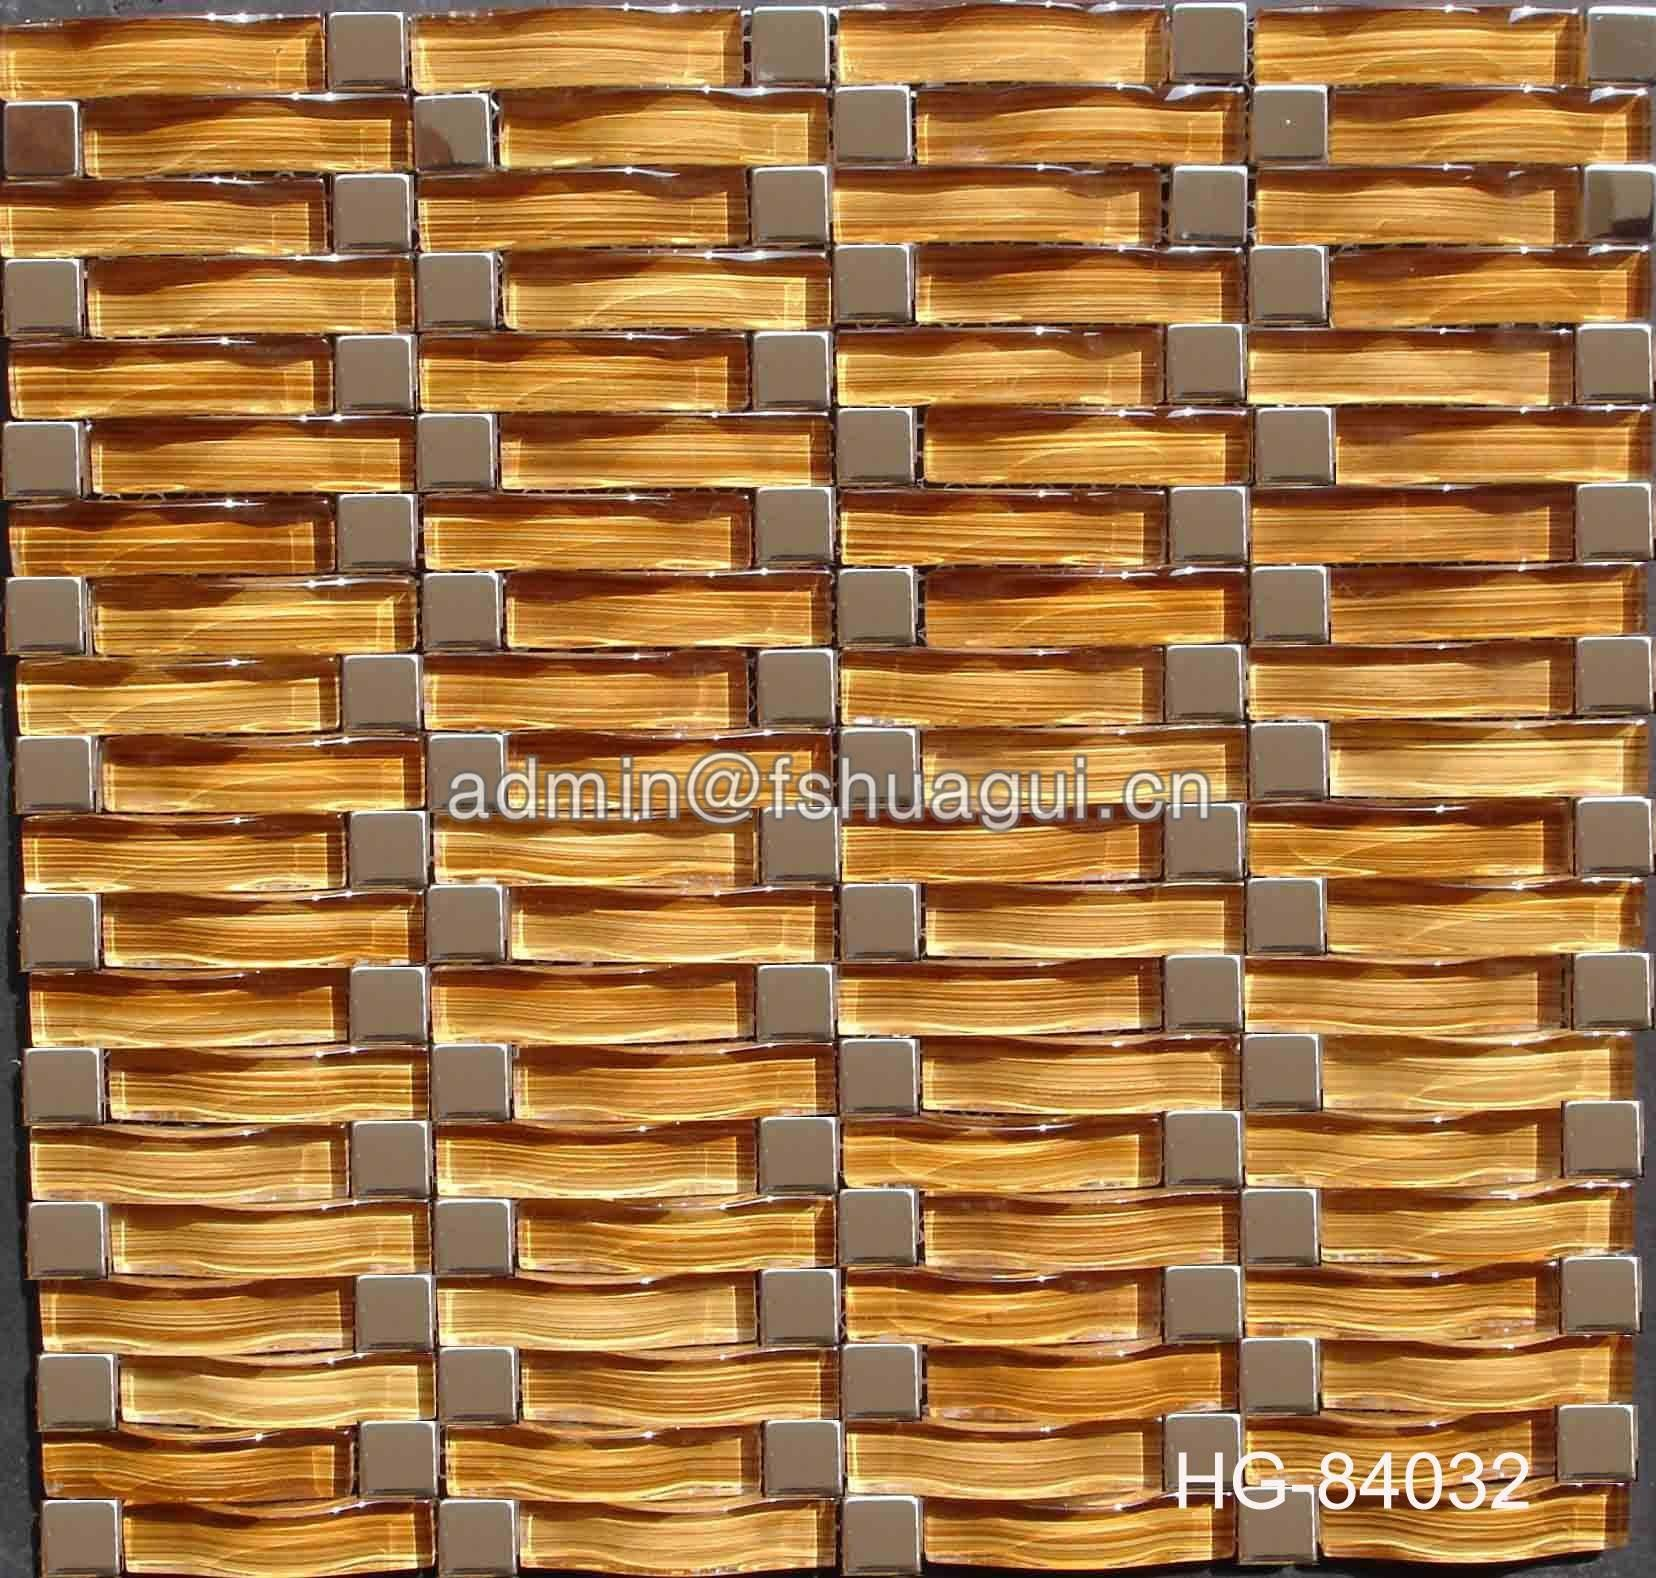 Luxury Interior Stainless Steel Mixed Glass Mosaic Backsplash Tile